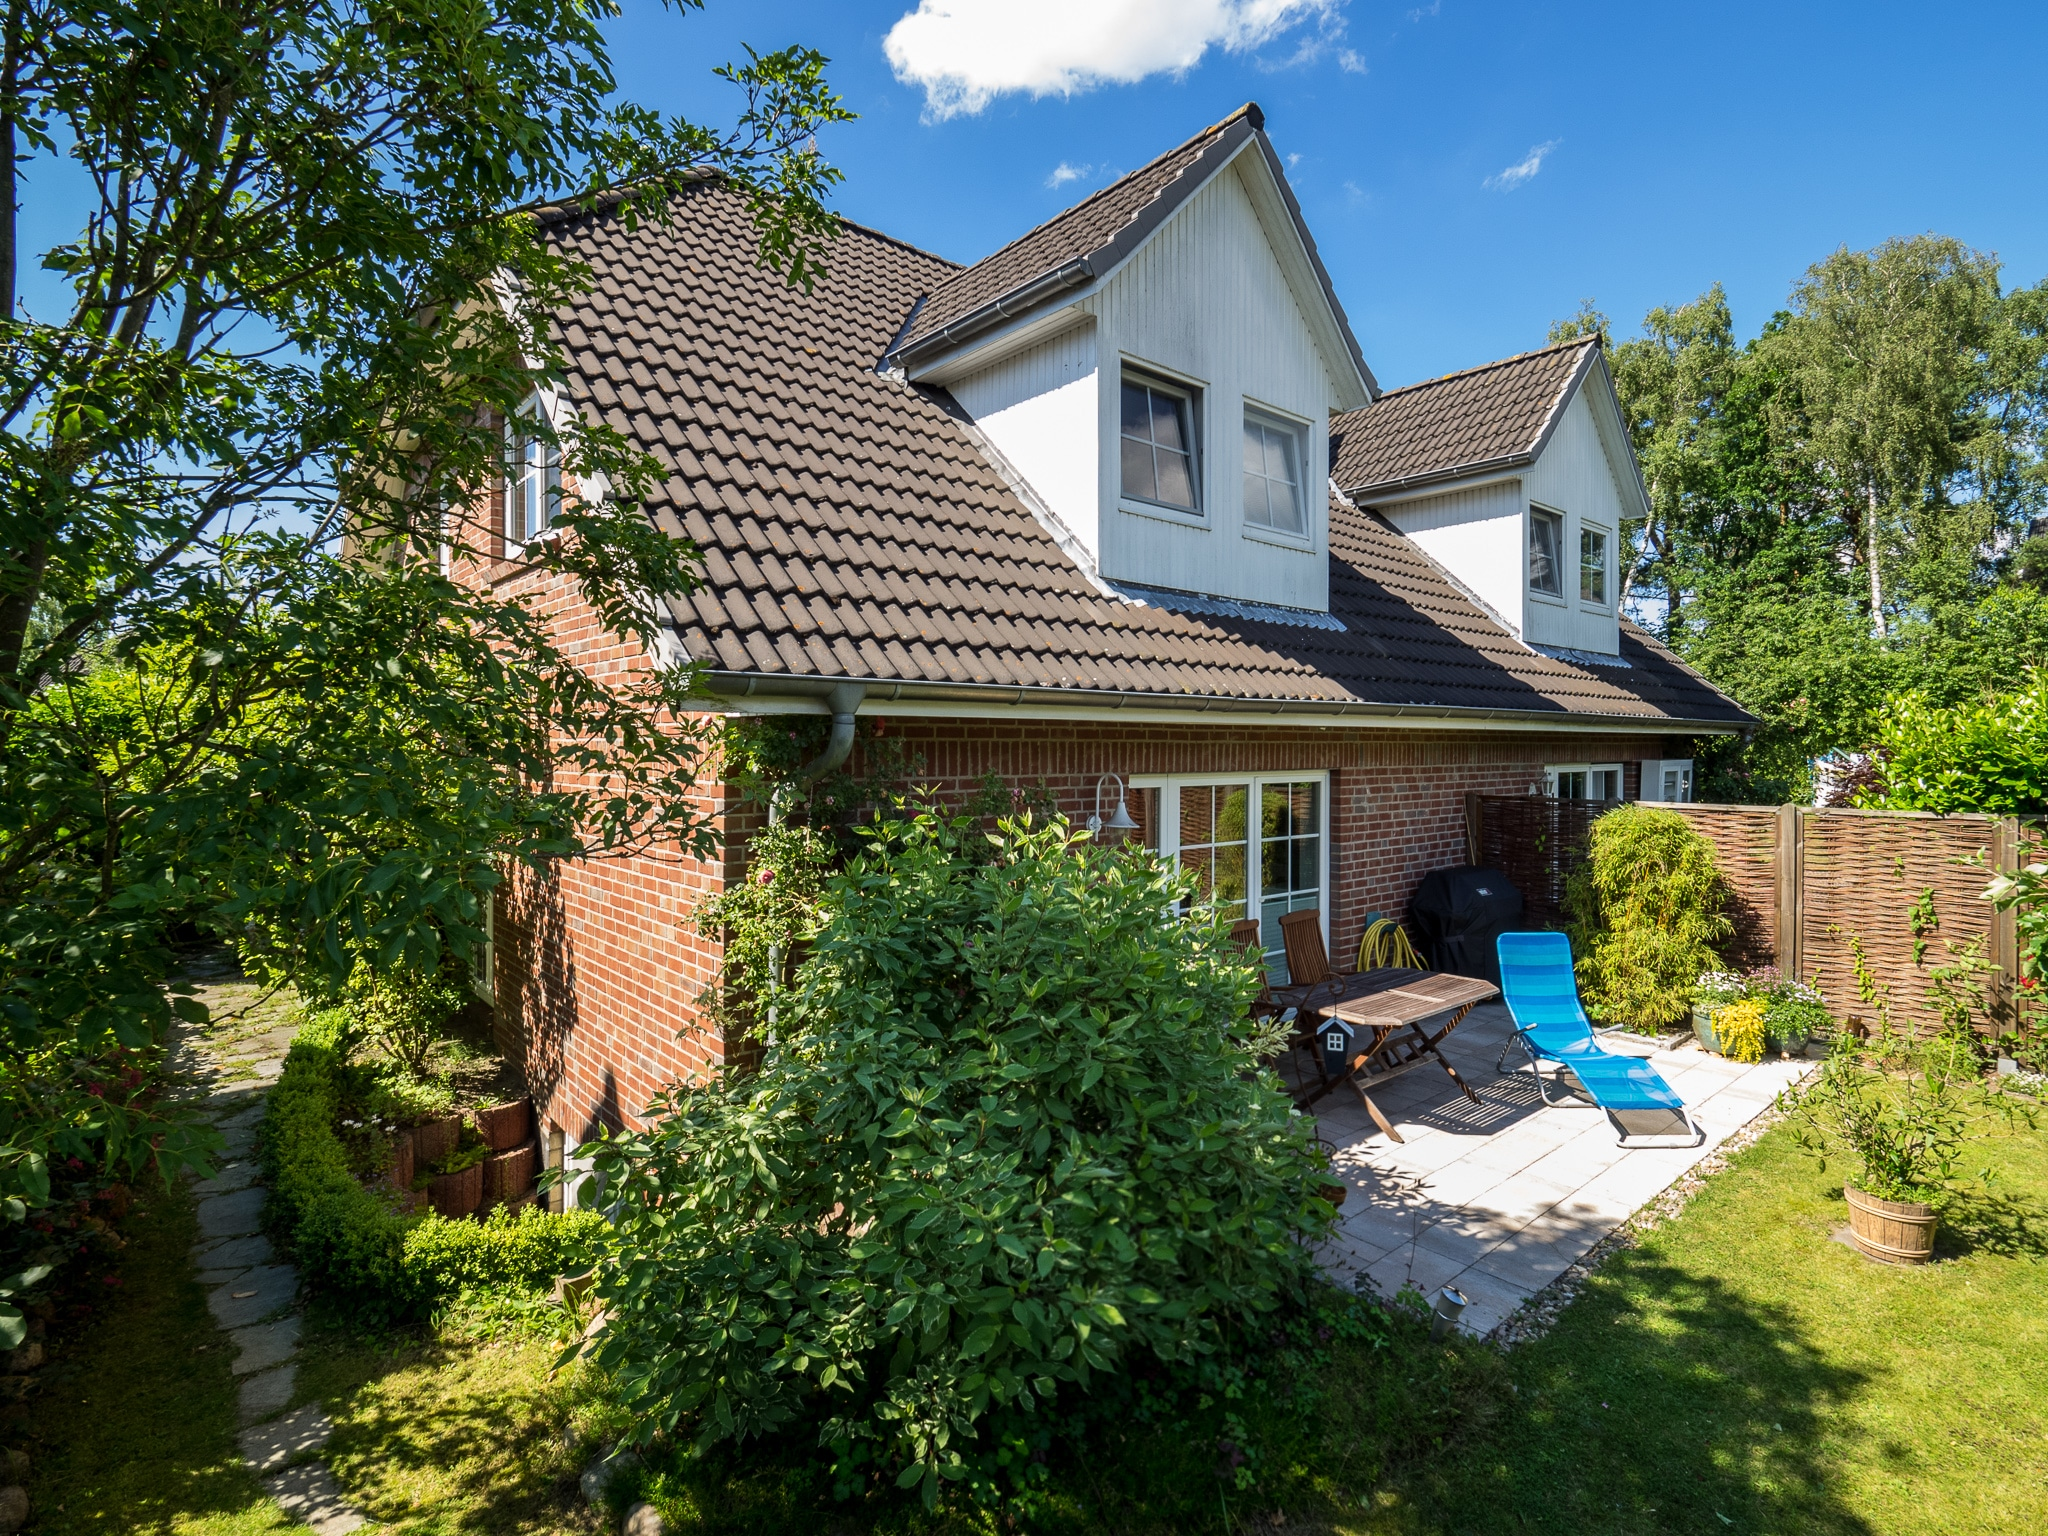 Immobilien in Norderstedt